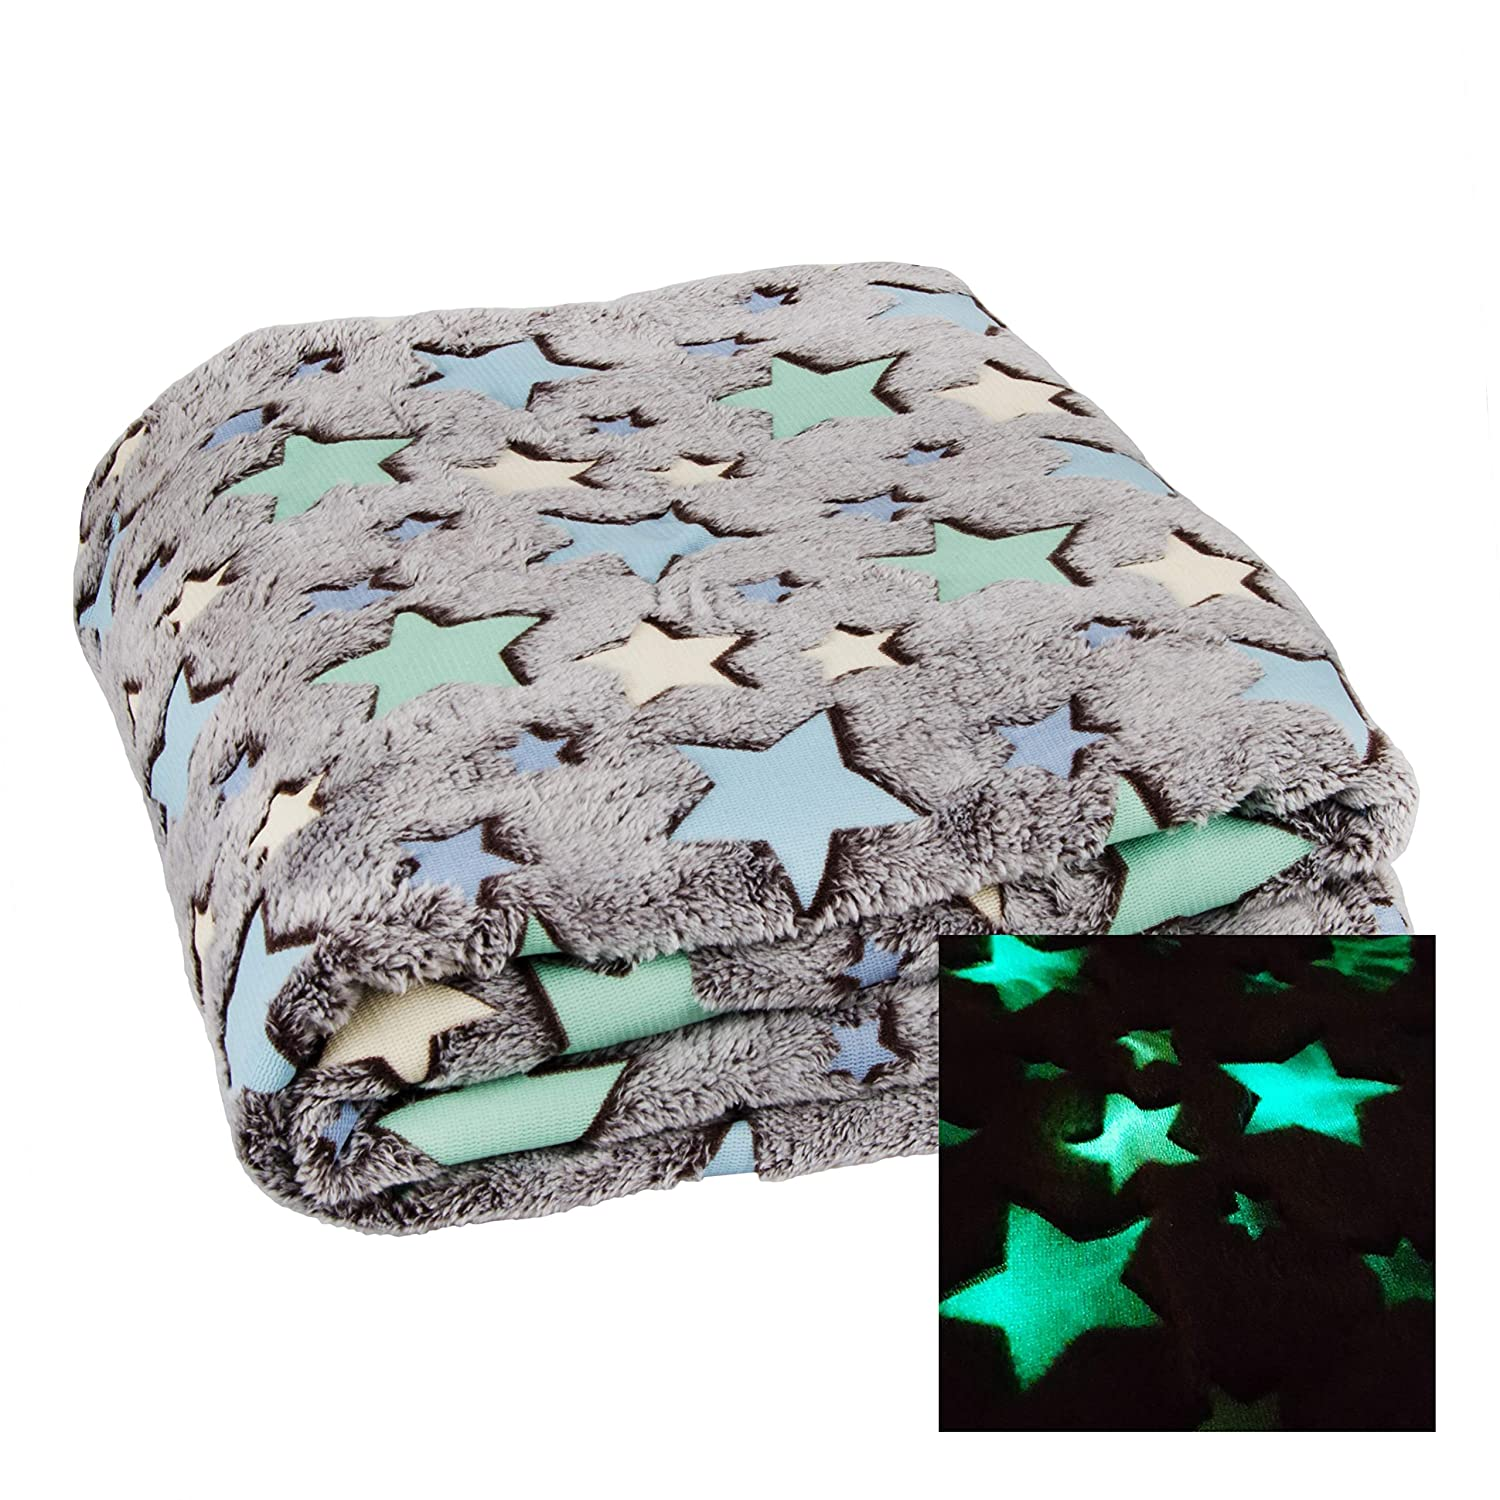 Cozy Soft Throw Blanket with Glow In The Dark Stars | Star Blanket 160x130 cm 63''x51'', 100 % Polyester dhal